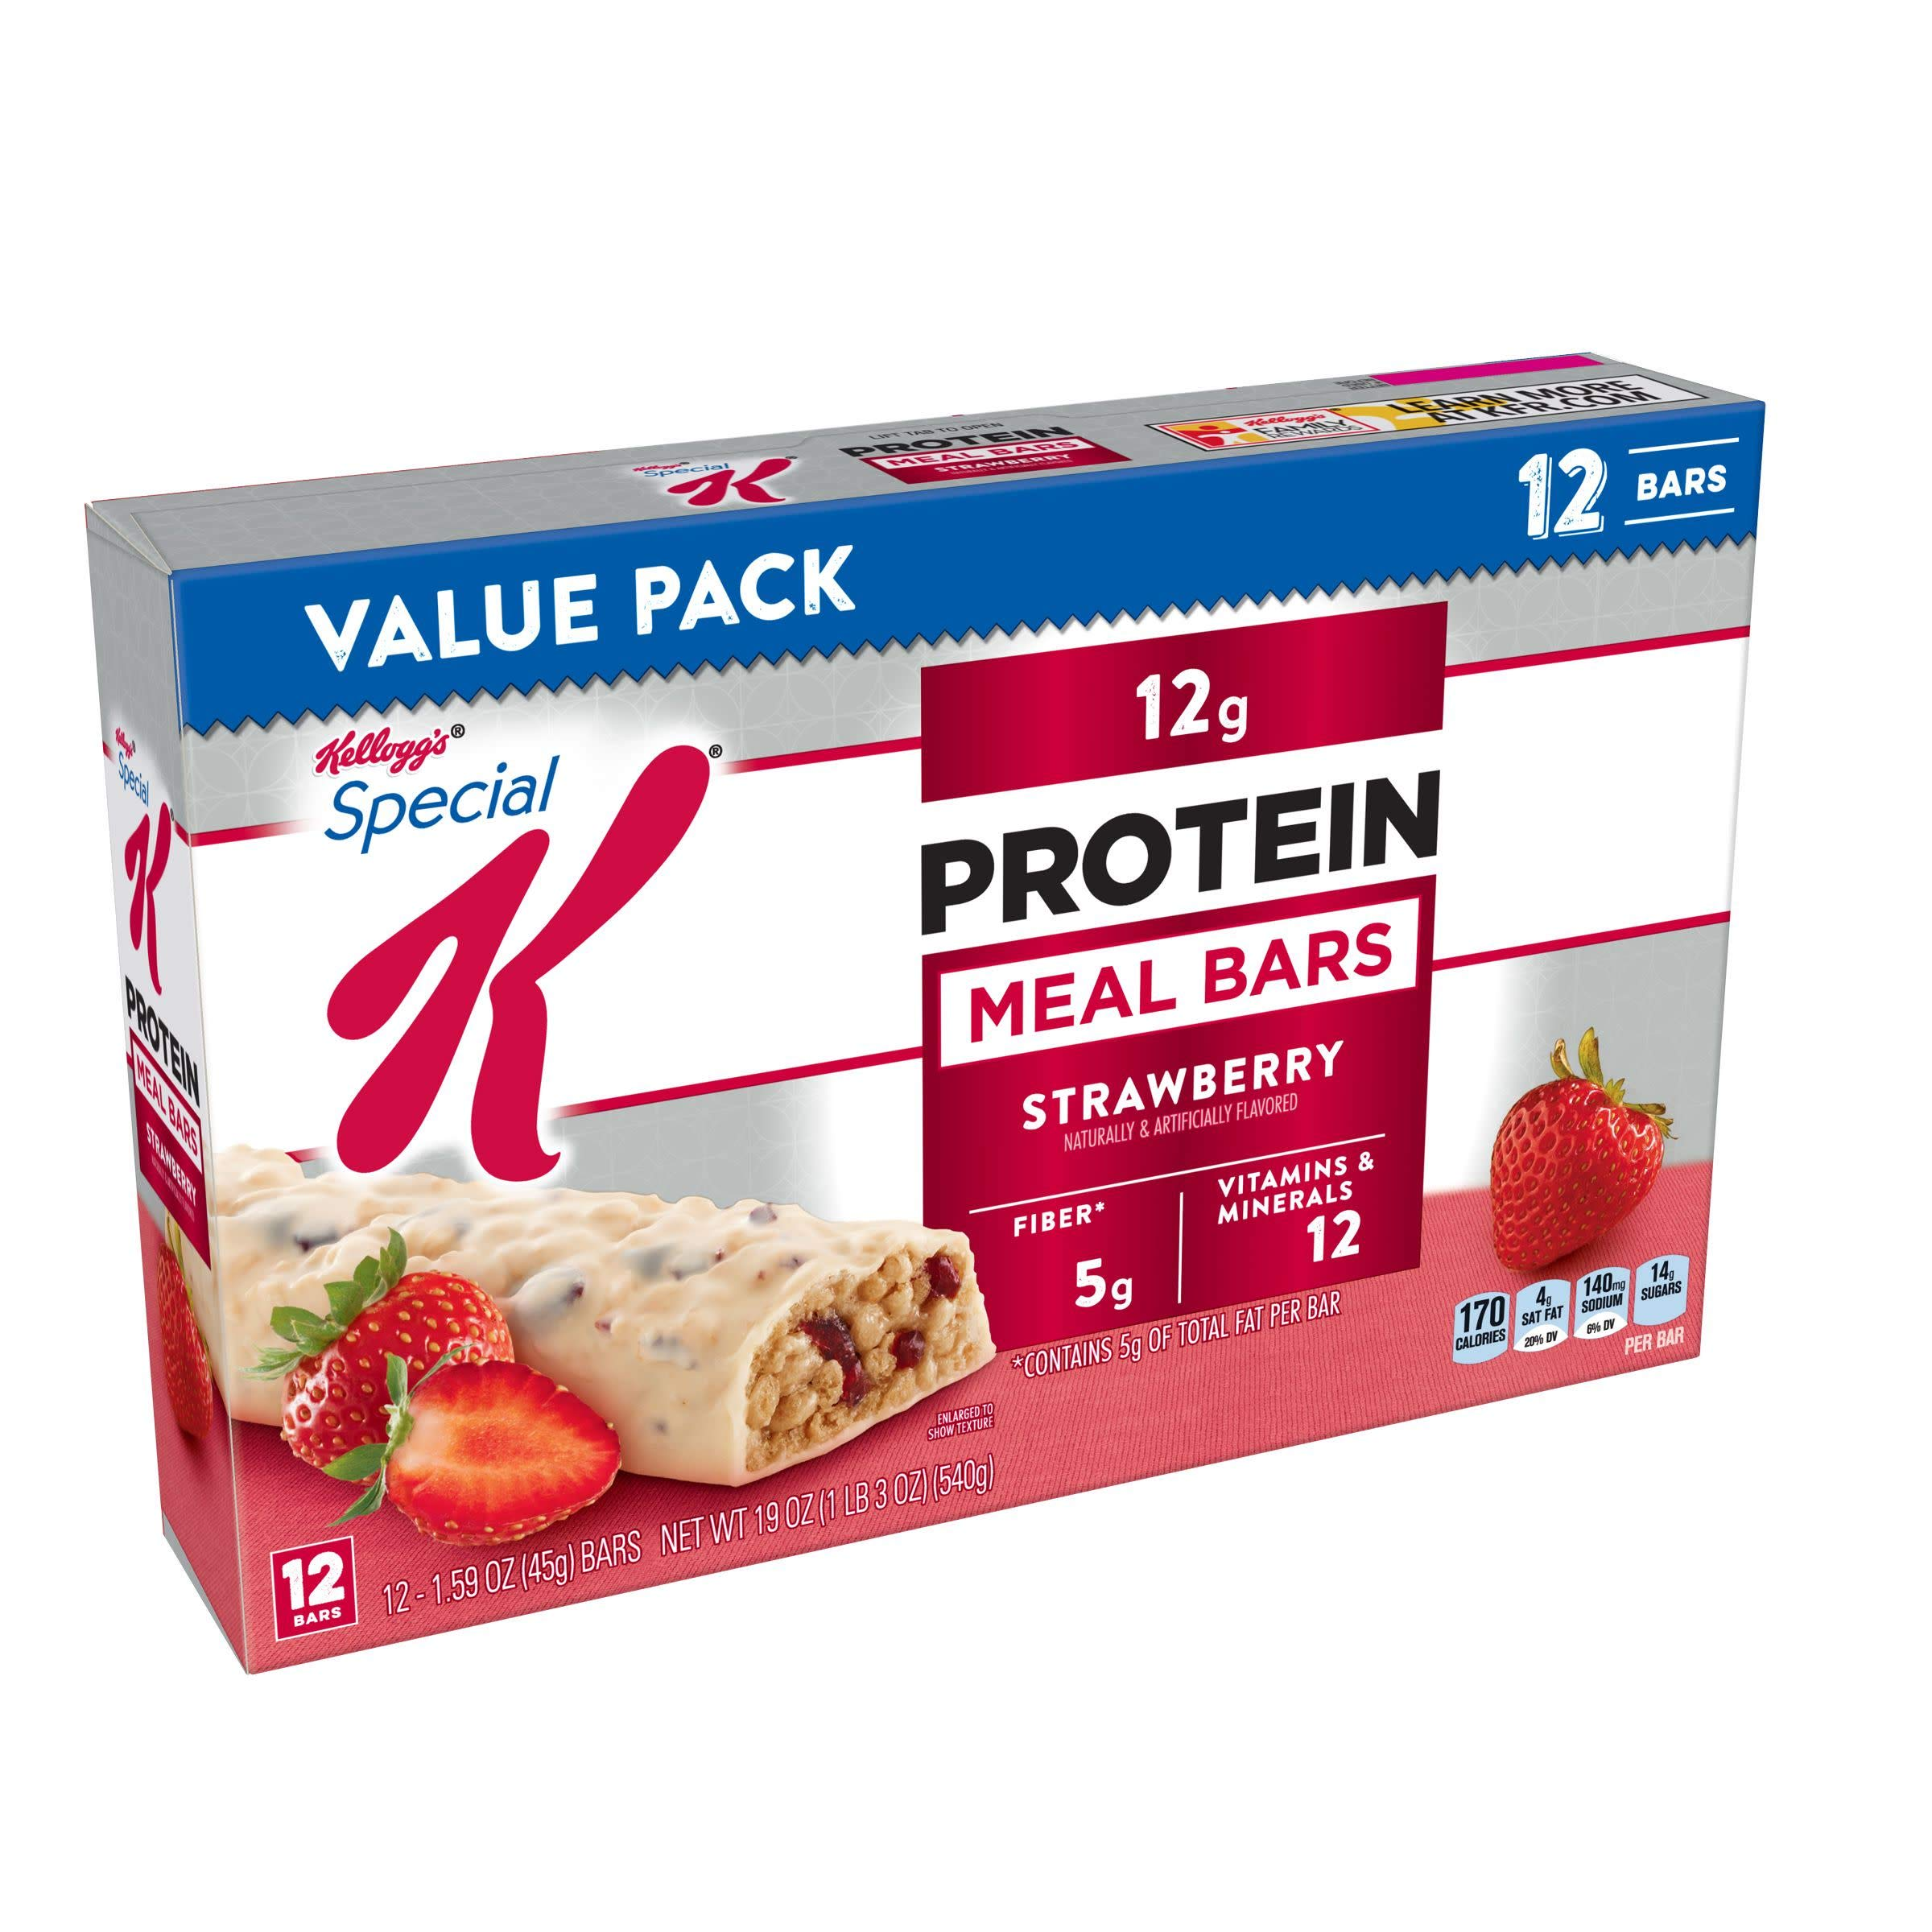 Special K Protein Meal Bars, Strawberry, Value Pack, 12 Count by Special K